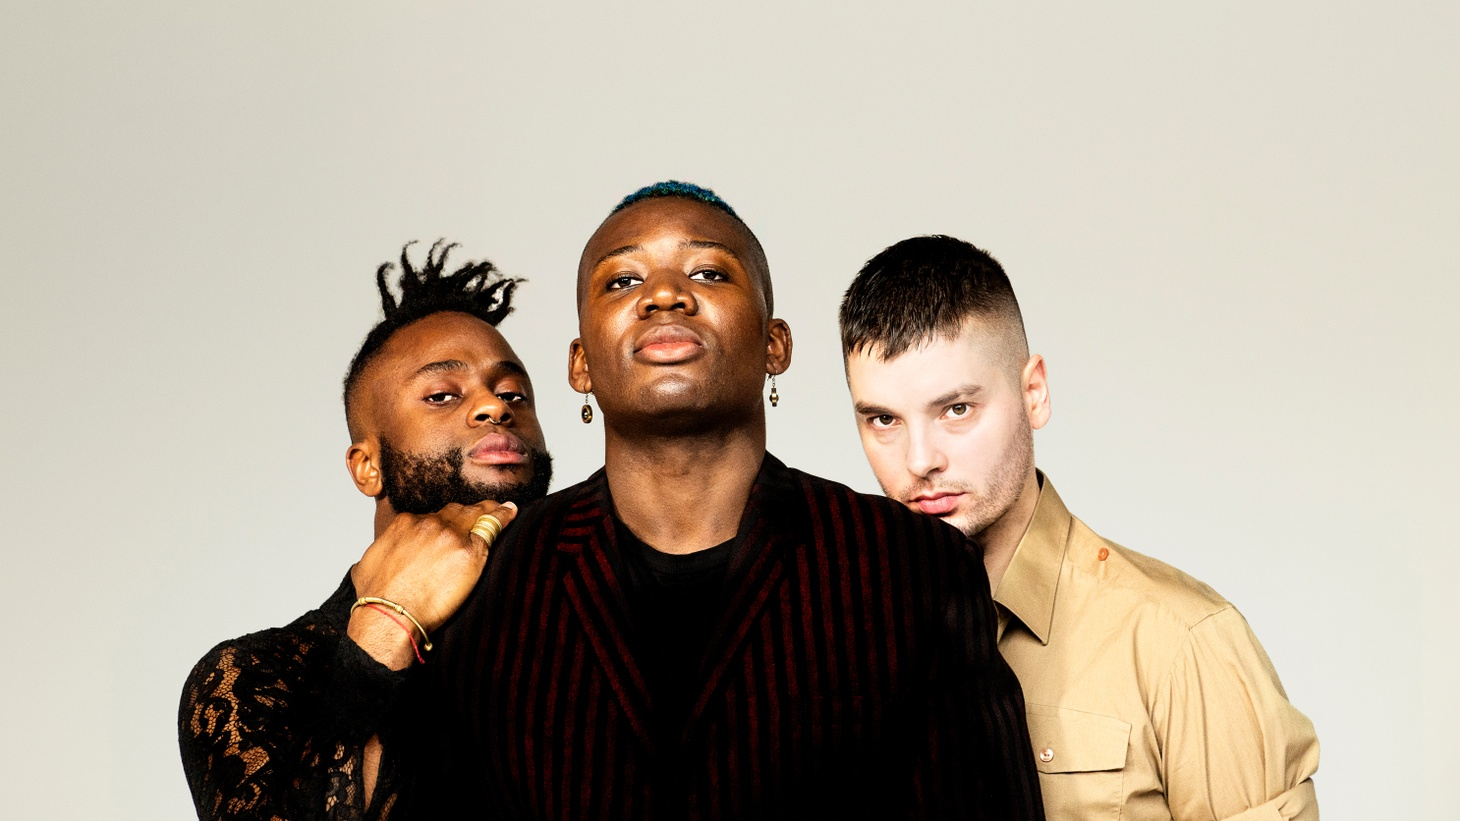 """""""Toy"""" is an energetic track you'll find on Young Fathers new album. Yes, it's unique and exhilarating but it's also subversive upon a closer listen."""